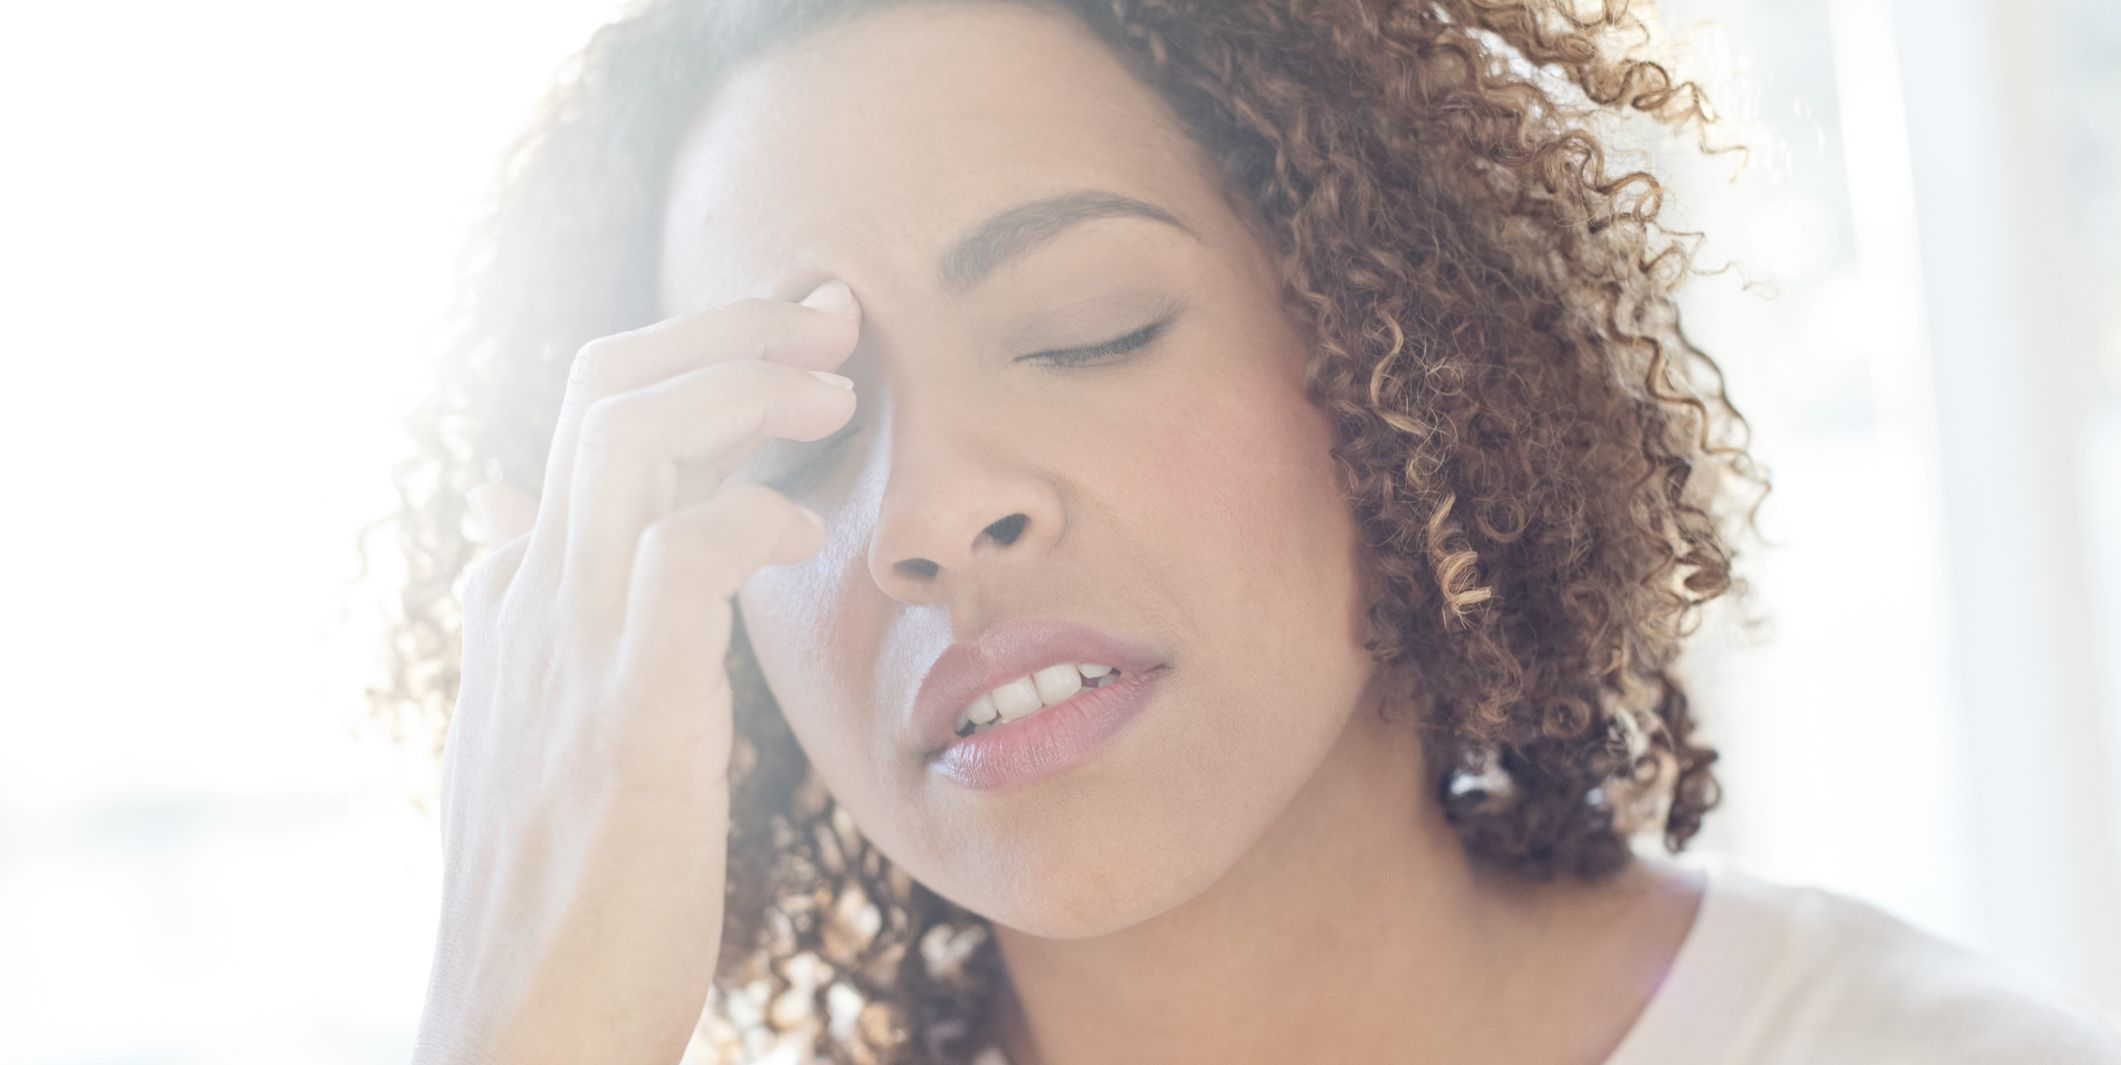 The 10-Second Headache Remedy a Physical Therapist Swears By